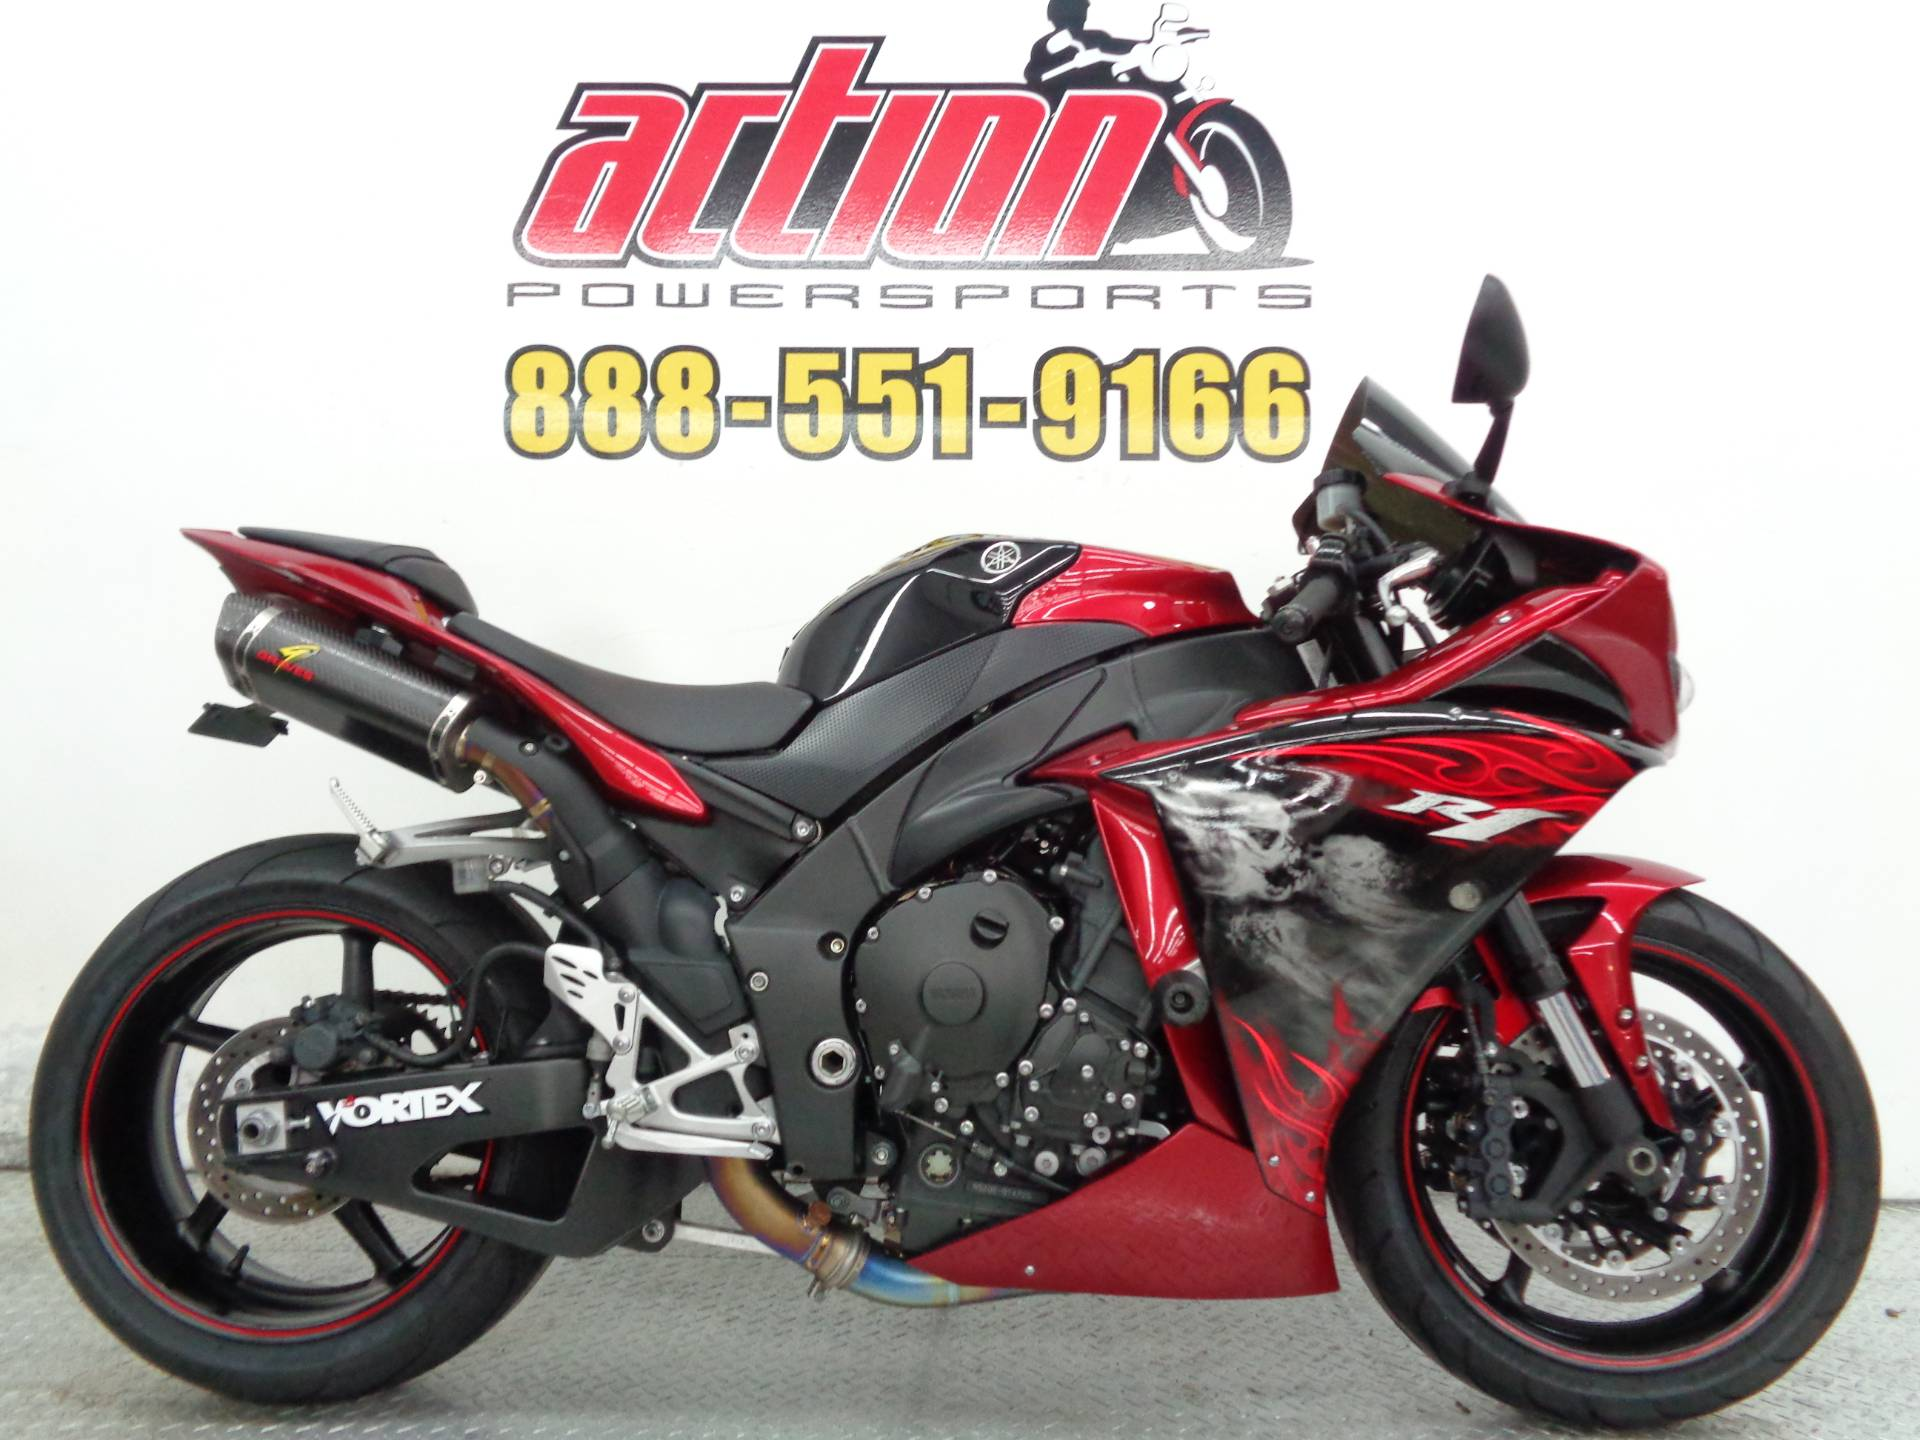 2011 Yamaha YZF-R1 for sale 22478